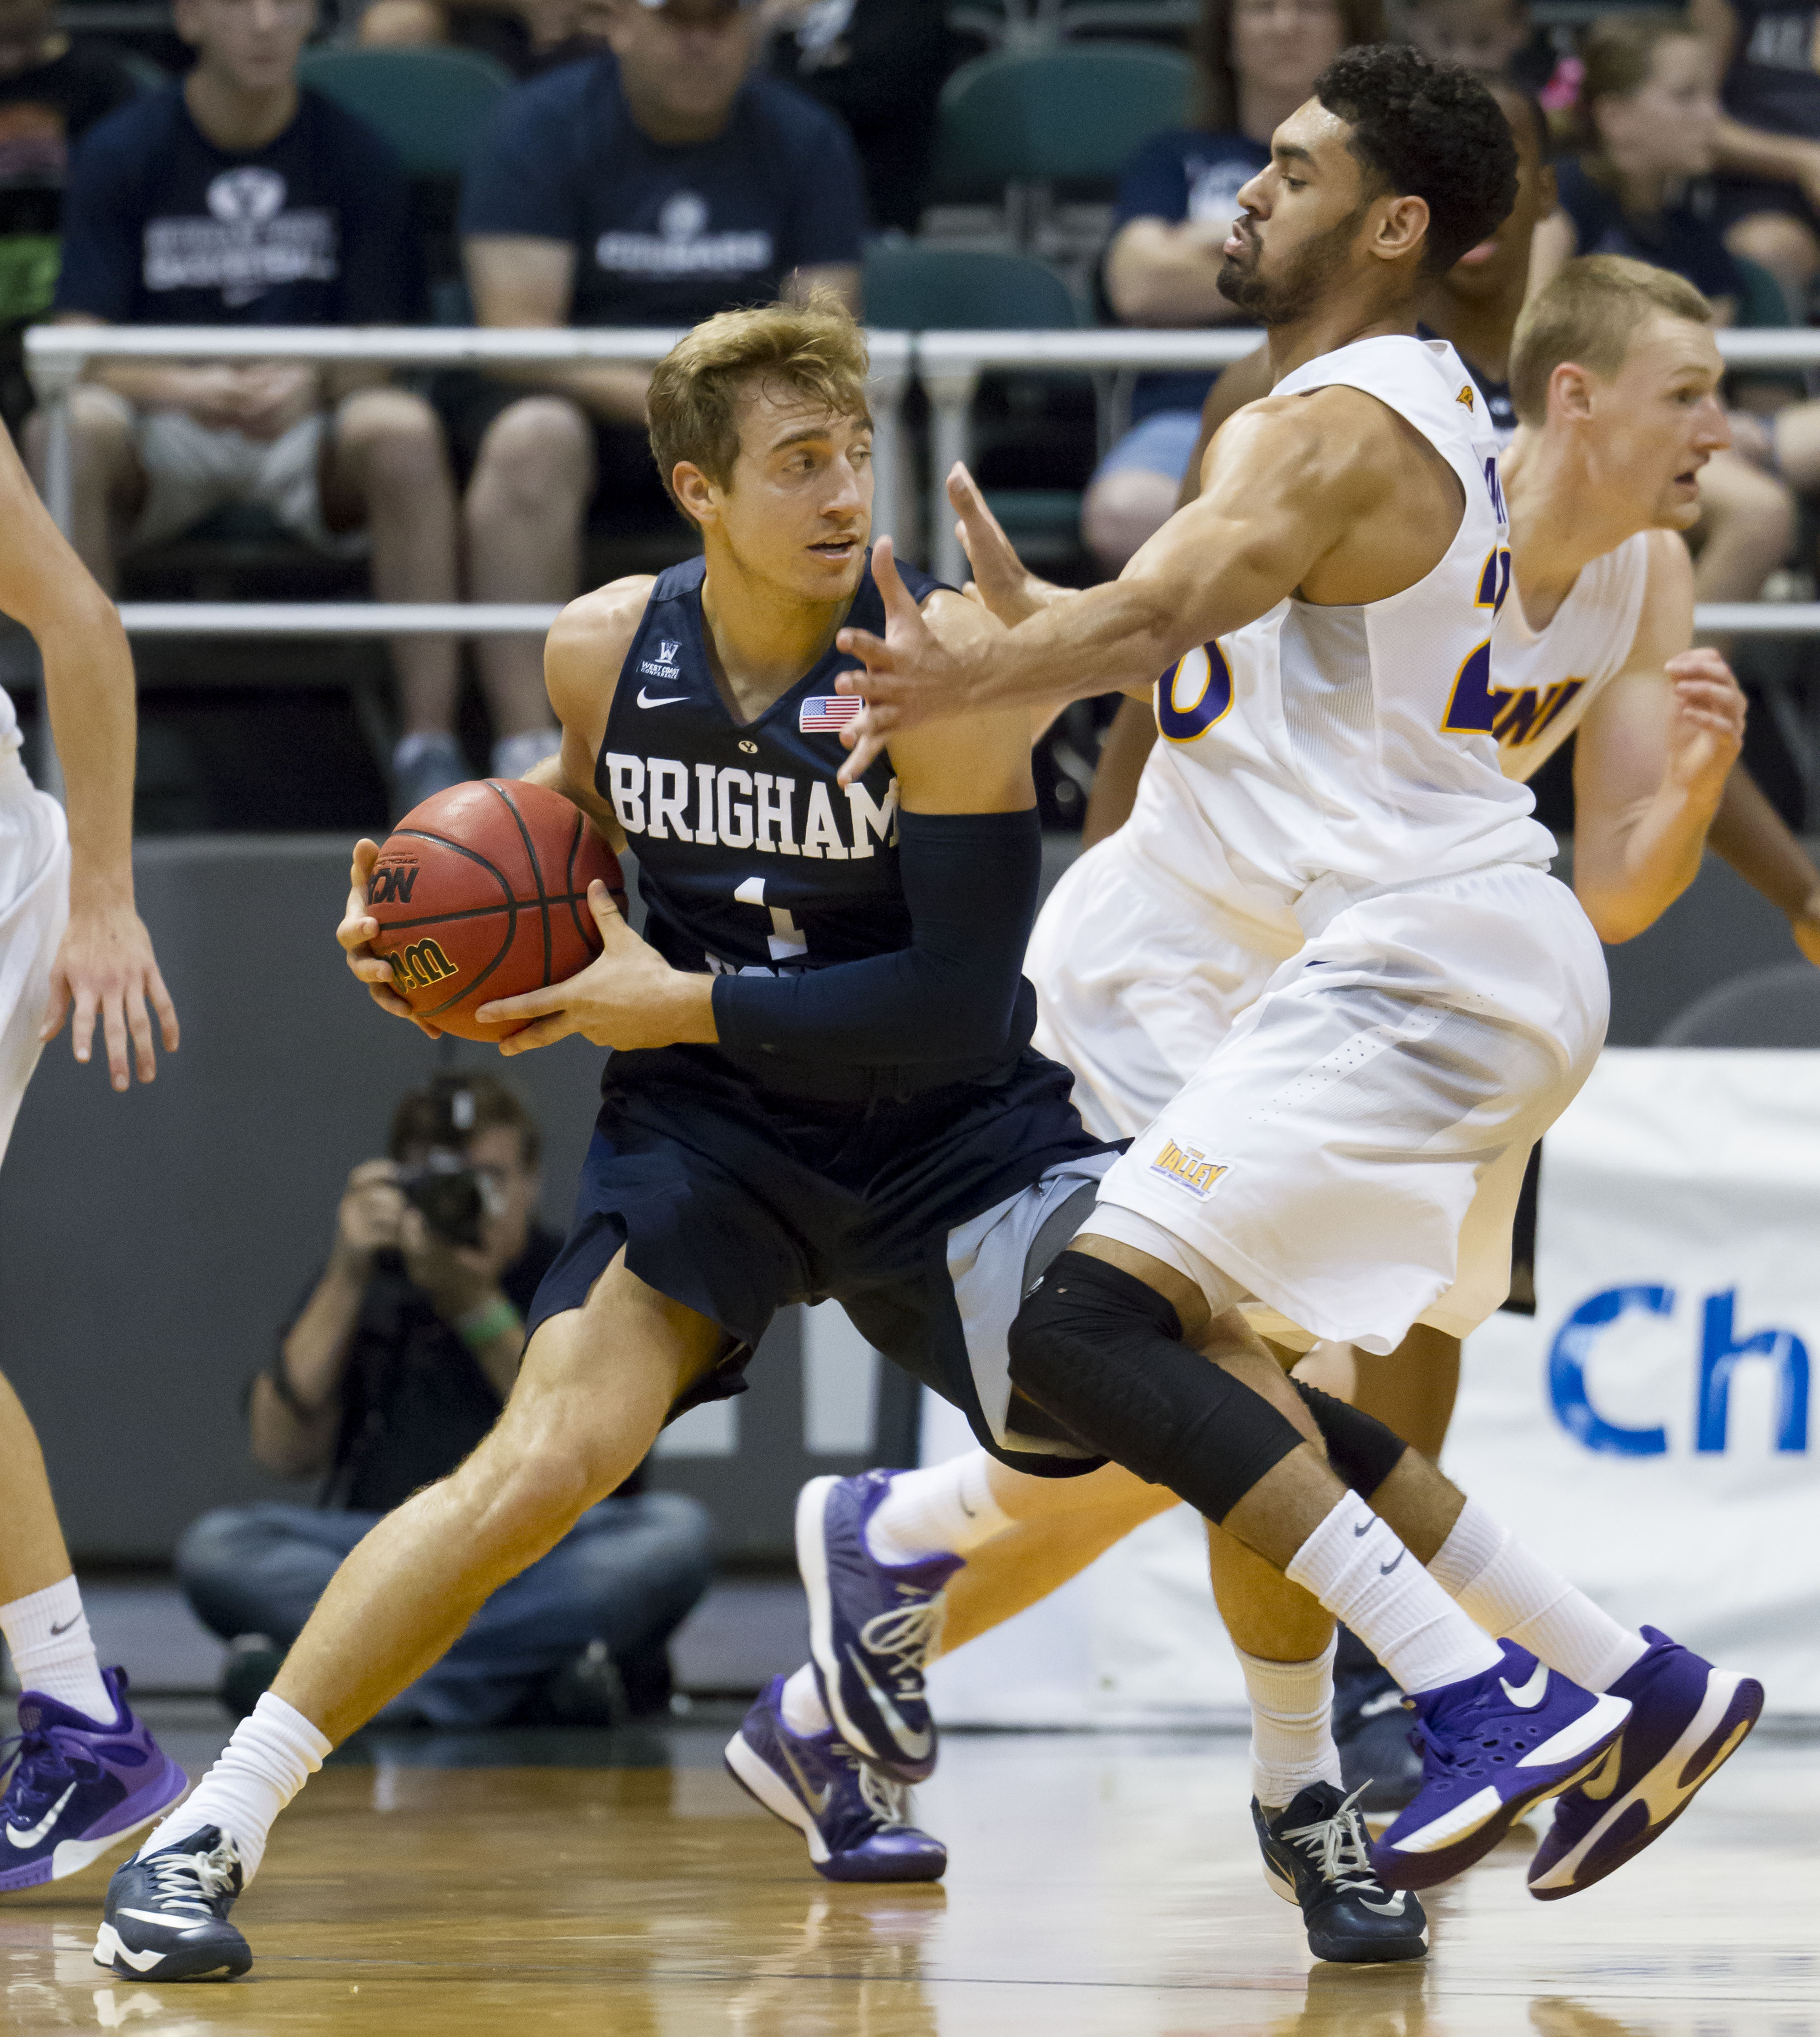 BYU guard Chase Fischer (1) looks for an open teammate to pass to while being defended by Northern Iowa guard Jeremy Morgan, right, in the second half of an NCAA college basketball game at the Diamond Head Classic, Friday, Dec. 25, 2015, in Honolulu. BYU